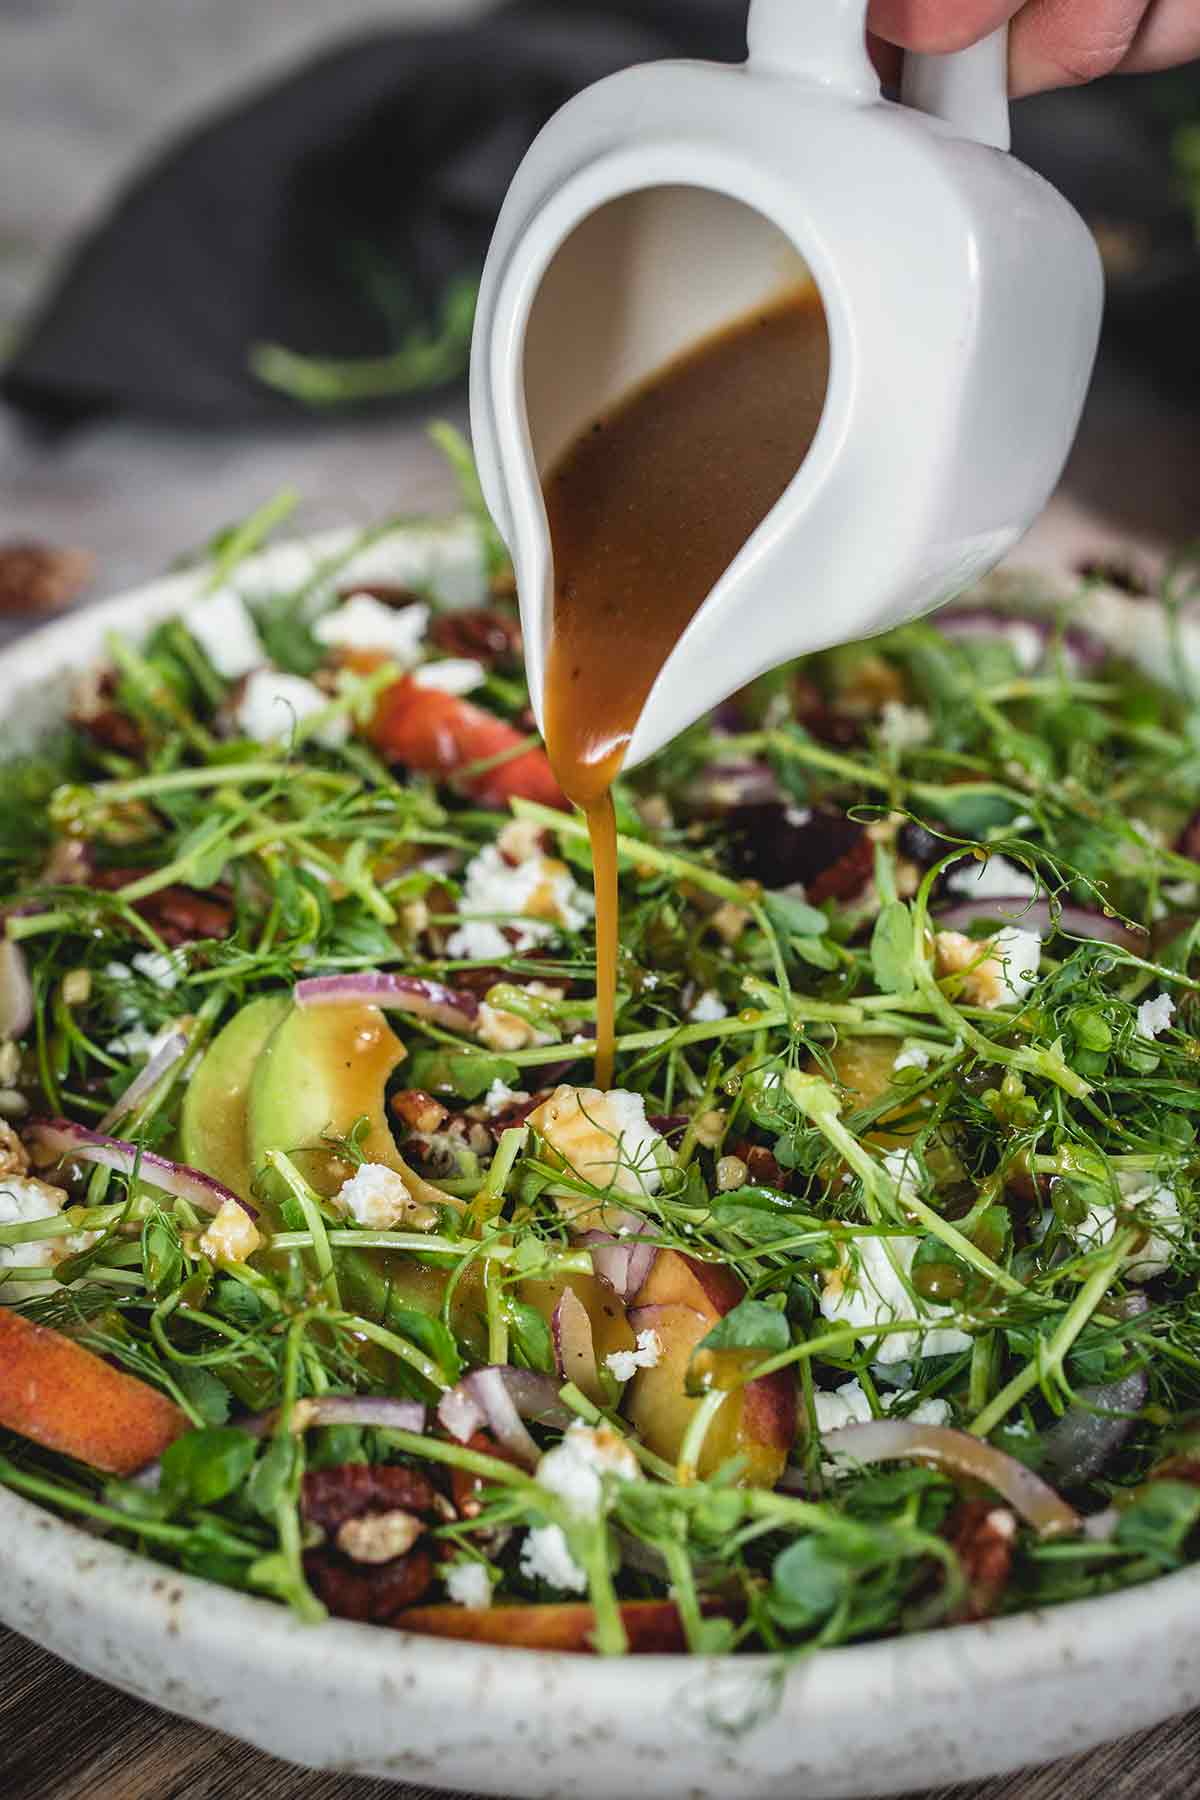 Pouring dressing over salad made with peaches, avocado and microgreens